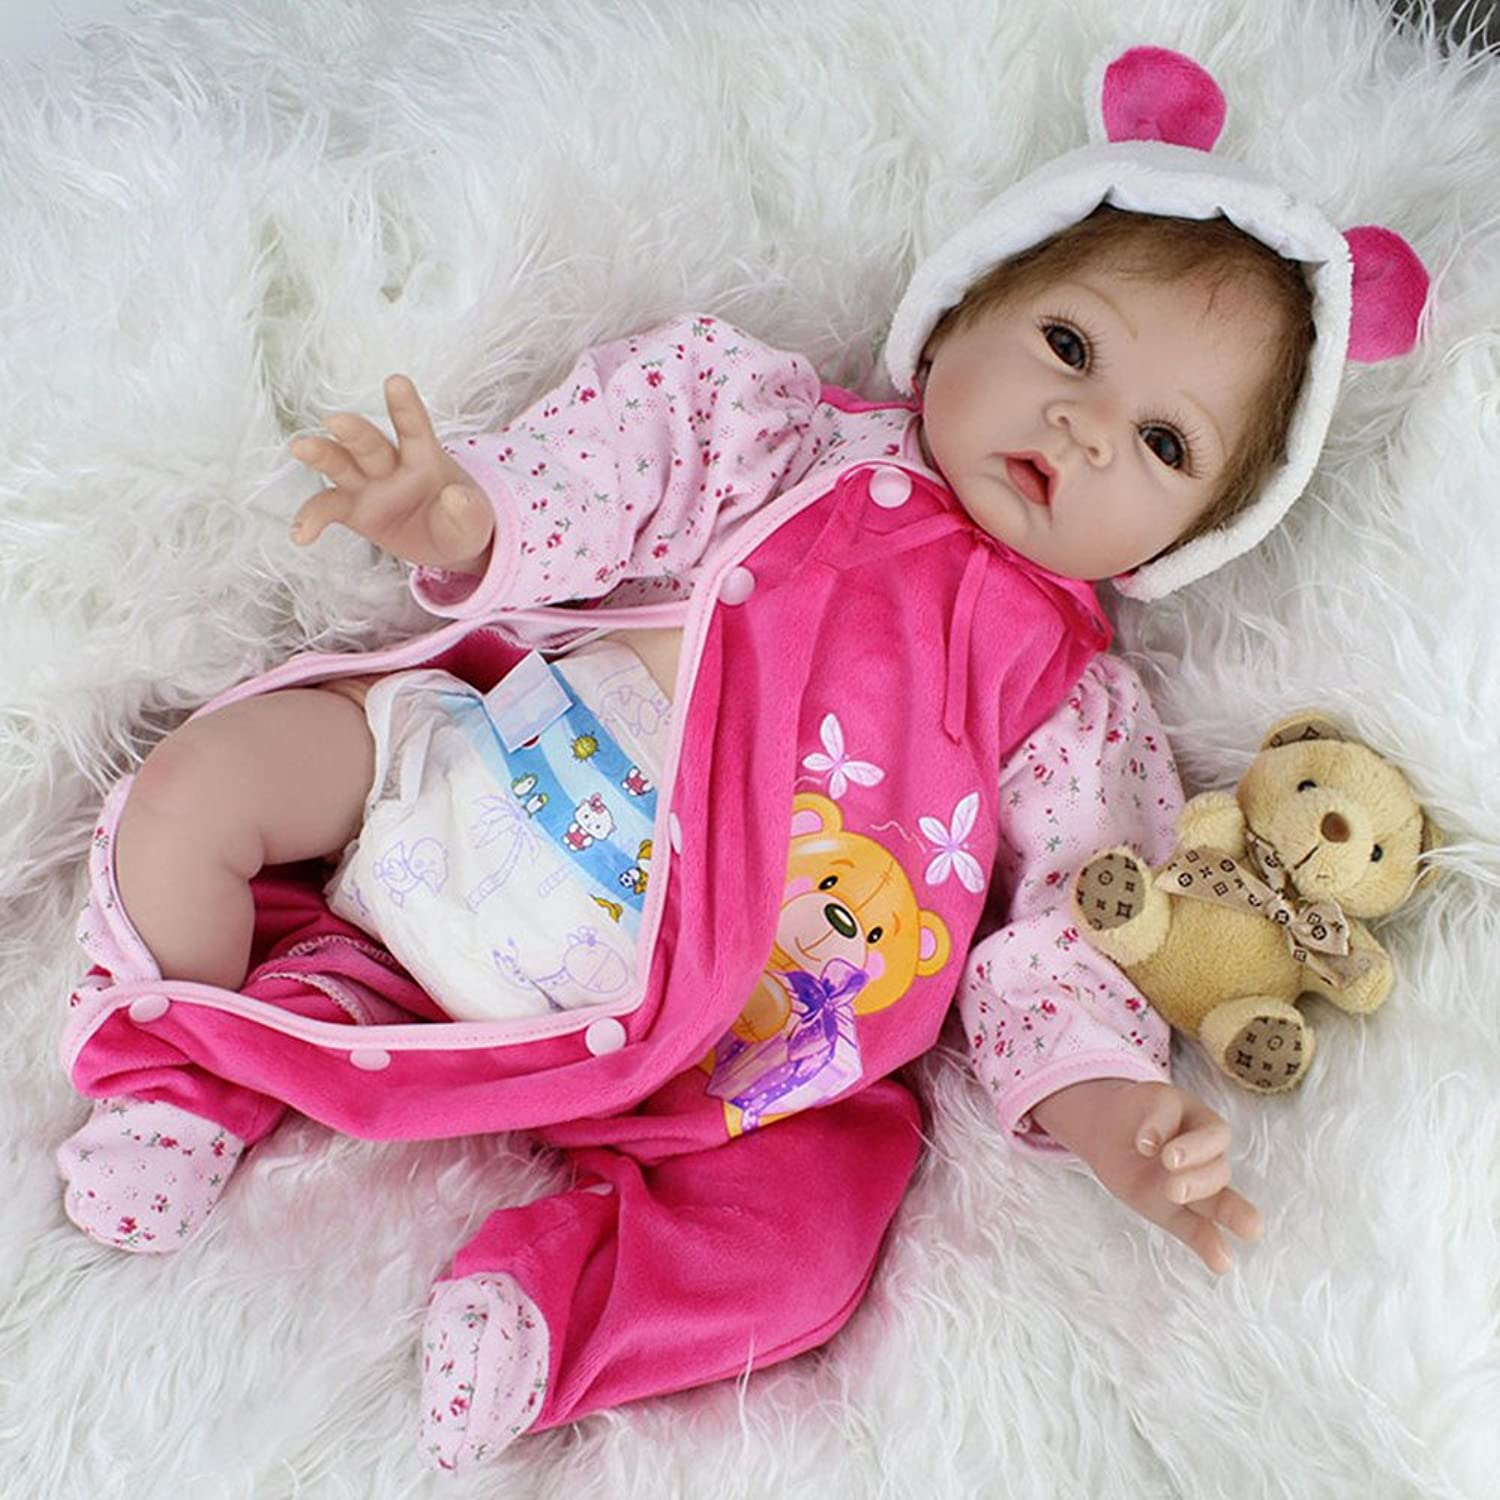 OtadDolls 22inch babies reborn dolls girl silicone baby real newborn toddlers Kids magnetic toy eyes open Lifelike